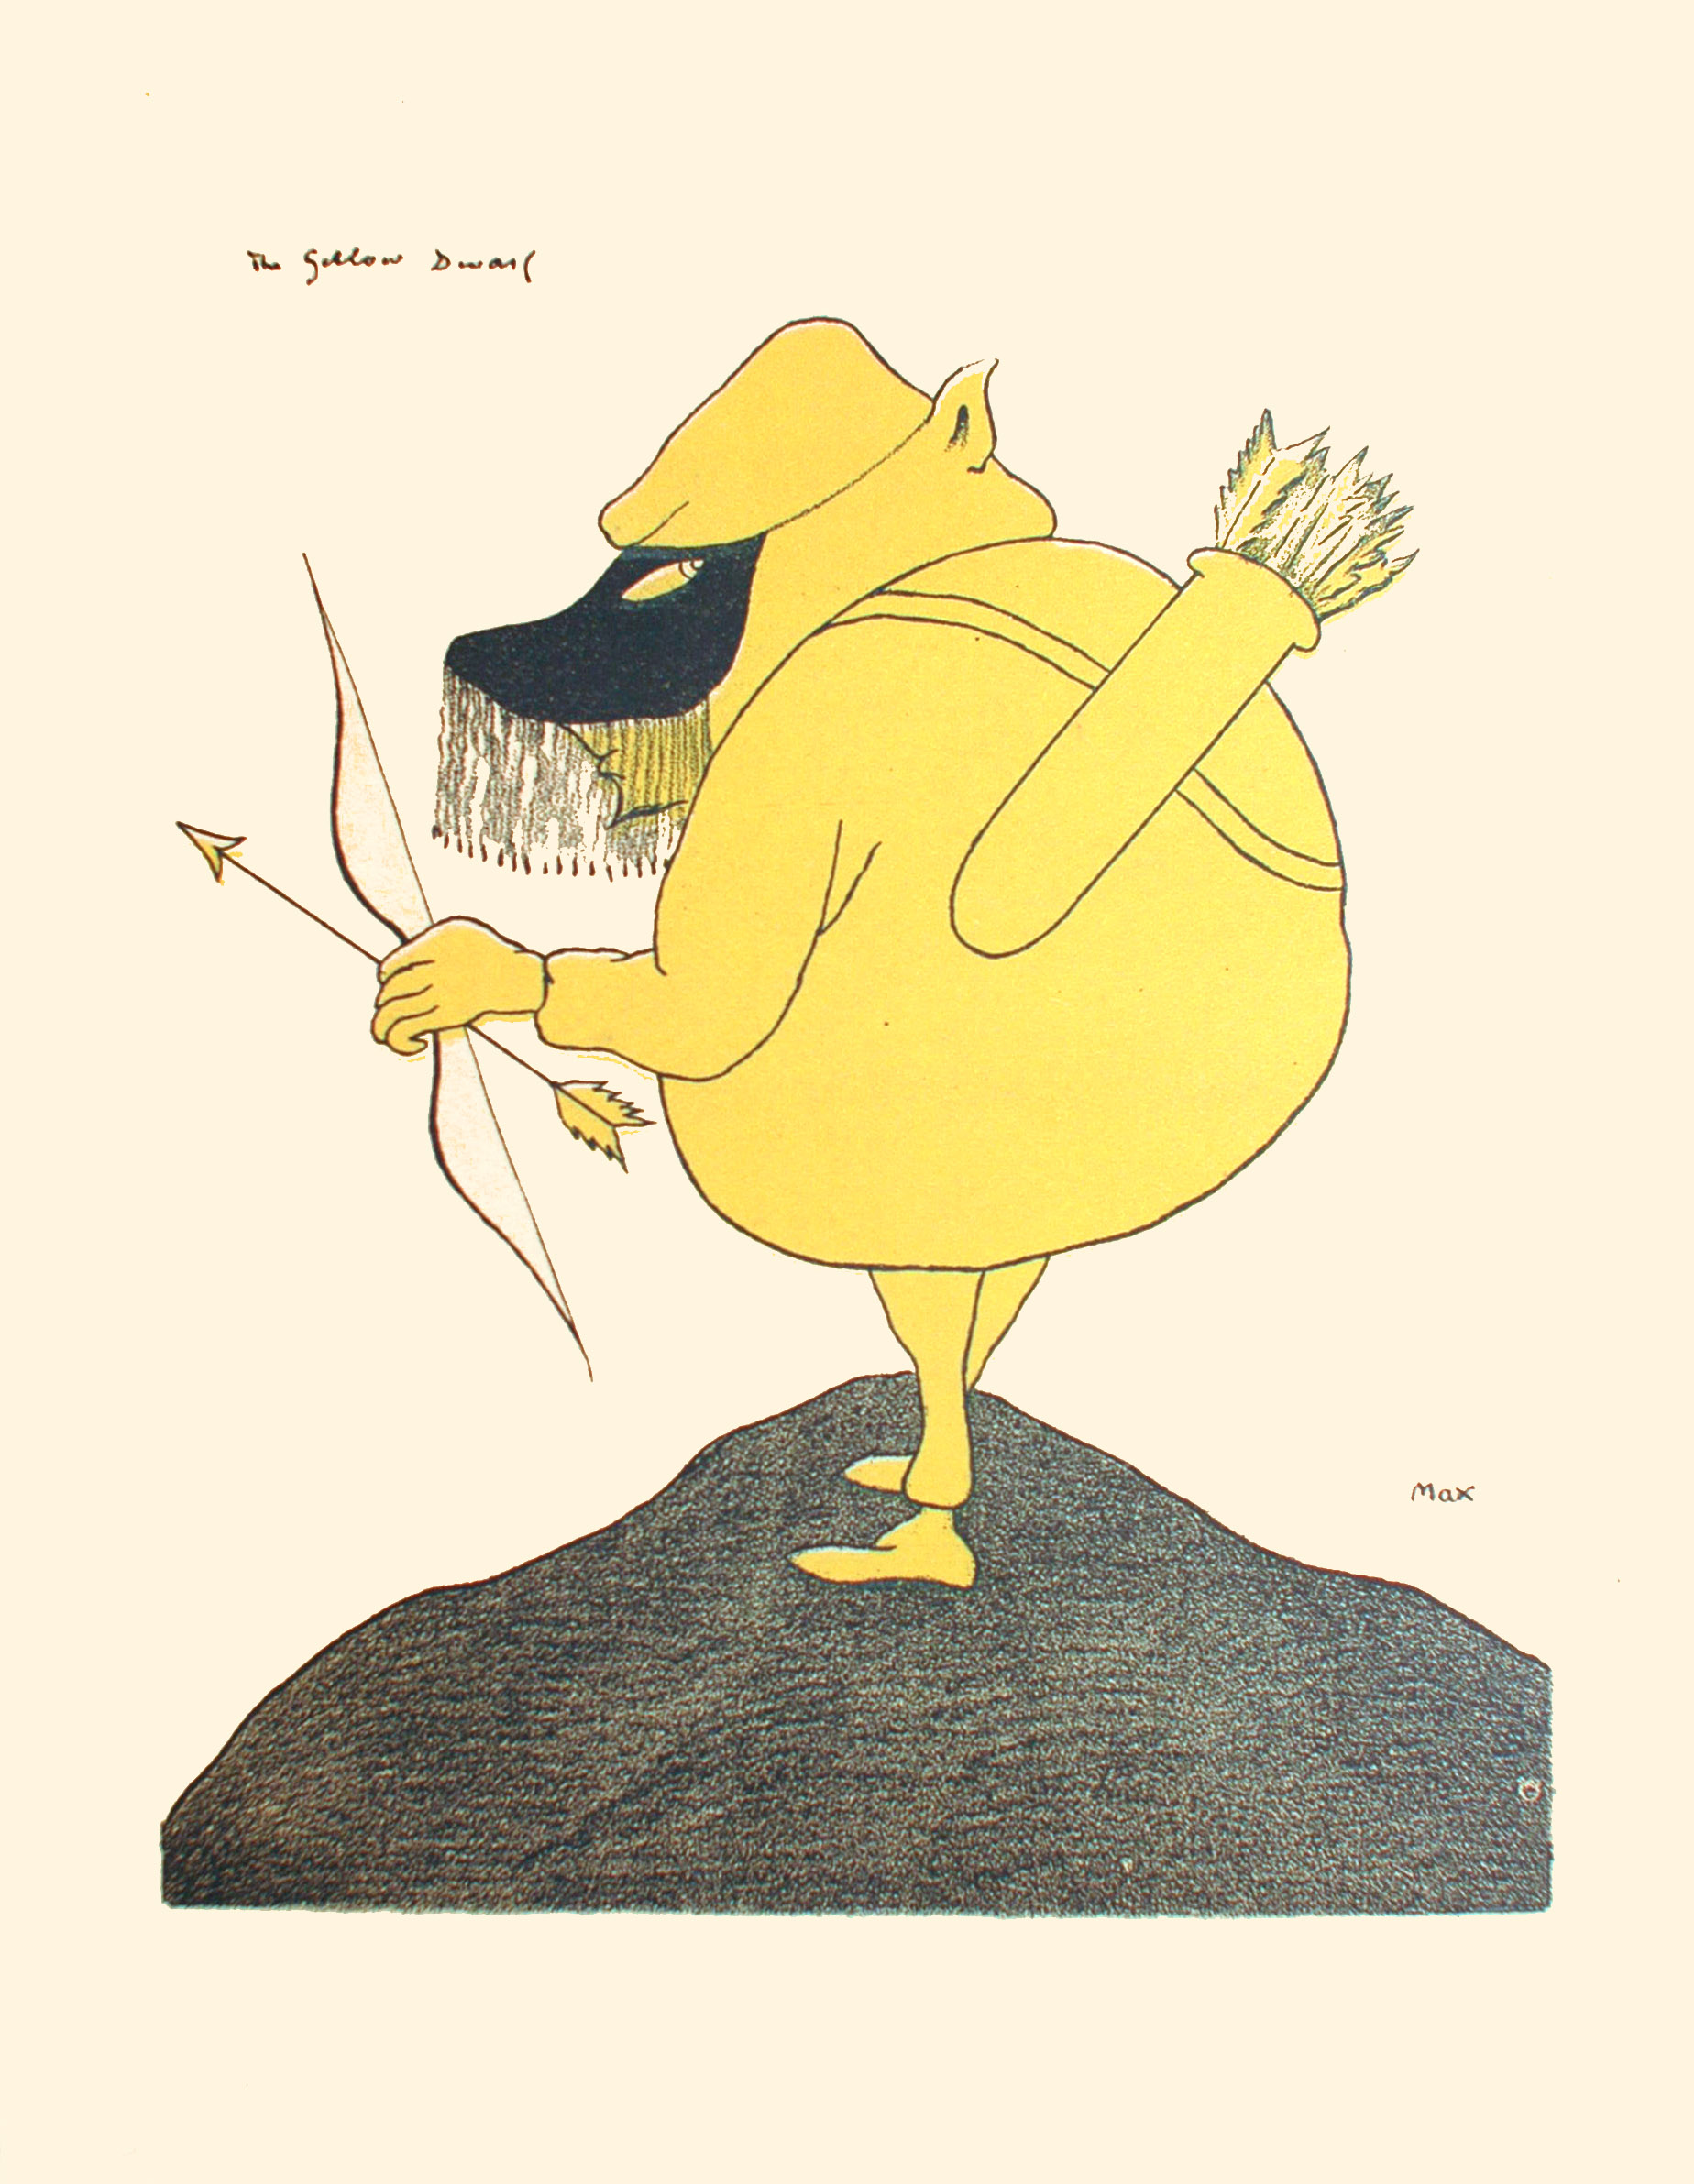 Image is of a pudgy dwarf clad completely in yellow with yellow skin He is wearing a black mask that covers his eyes it has a black fringe on it He is shown in profile looking upward behind him. The man has a quiver with some arrows in it strapped on his back His left hand holds a bow and a single arrow He is standing on top of a hill The background is open and undefined The image s title The Yellow Dwarf is written in the upper left hand corner the artist's name MAX is on the lower right hand side The image is printed on yellowed paper The image is vertically displayed